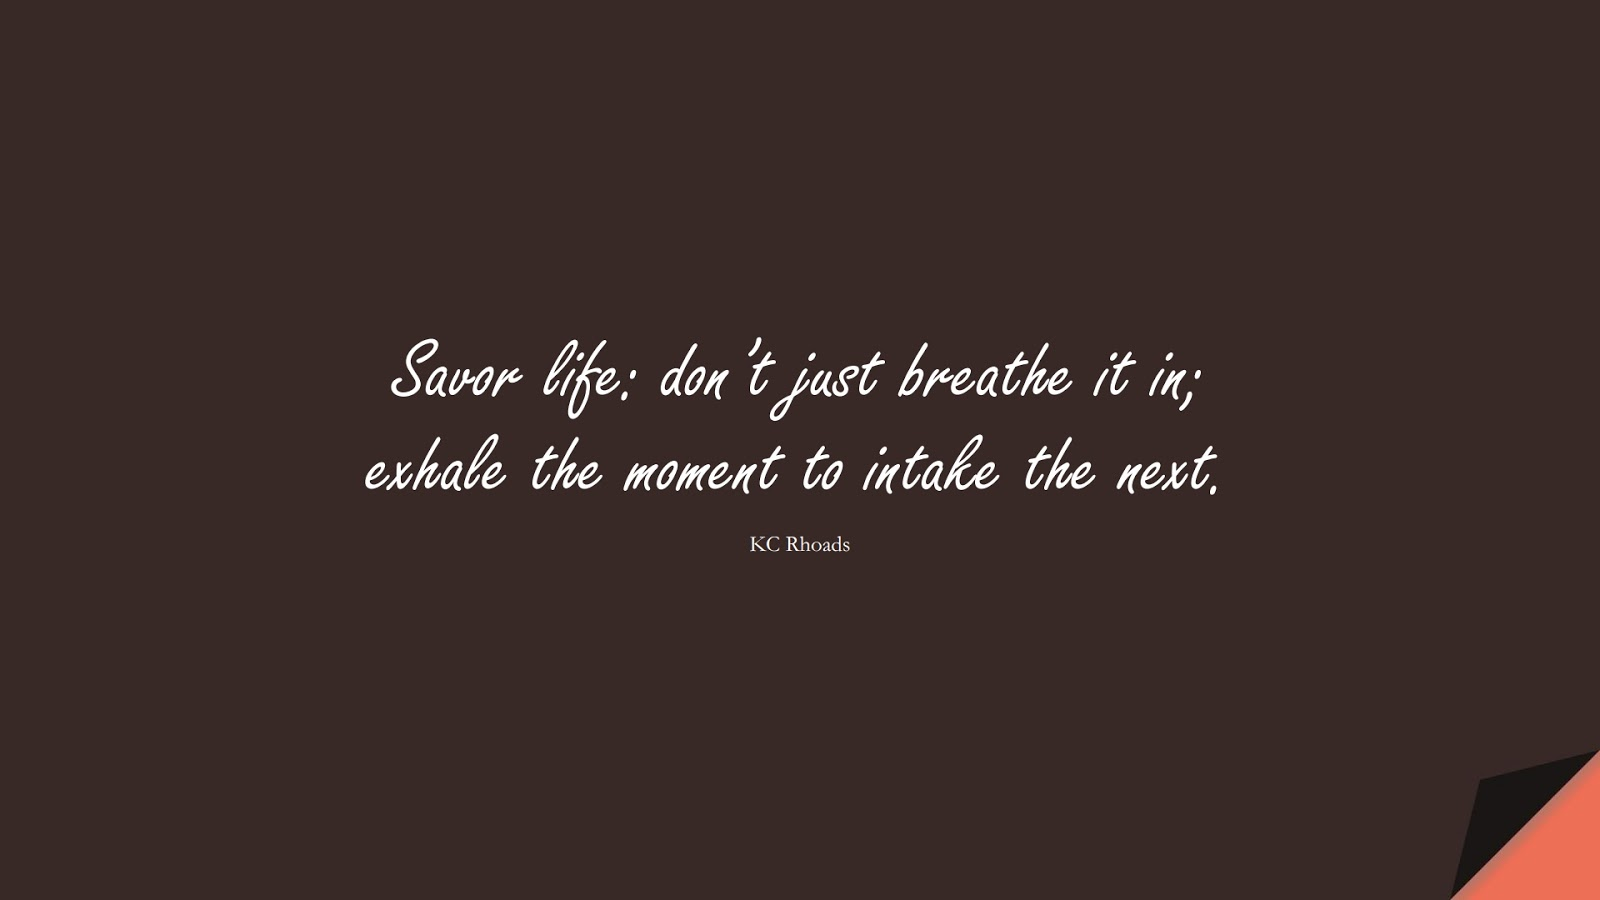 Savor life: don't just breathe it in; exhale the moment to intake the next. (KC Rhoads);  #HopeQuotes